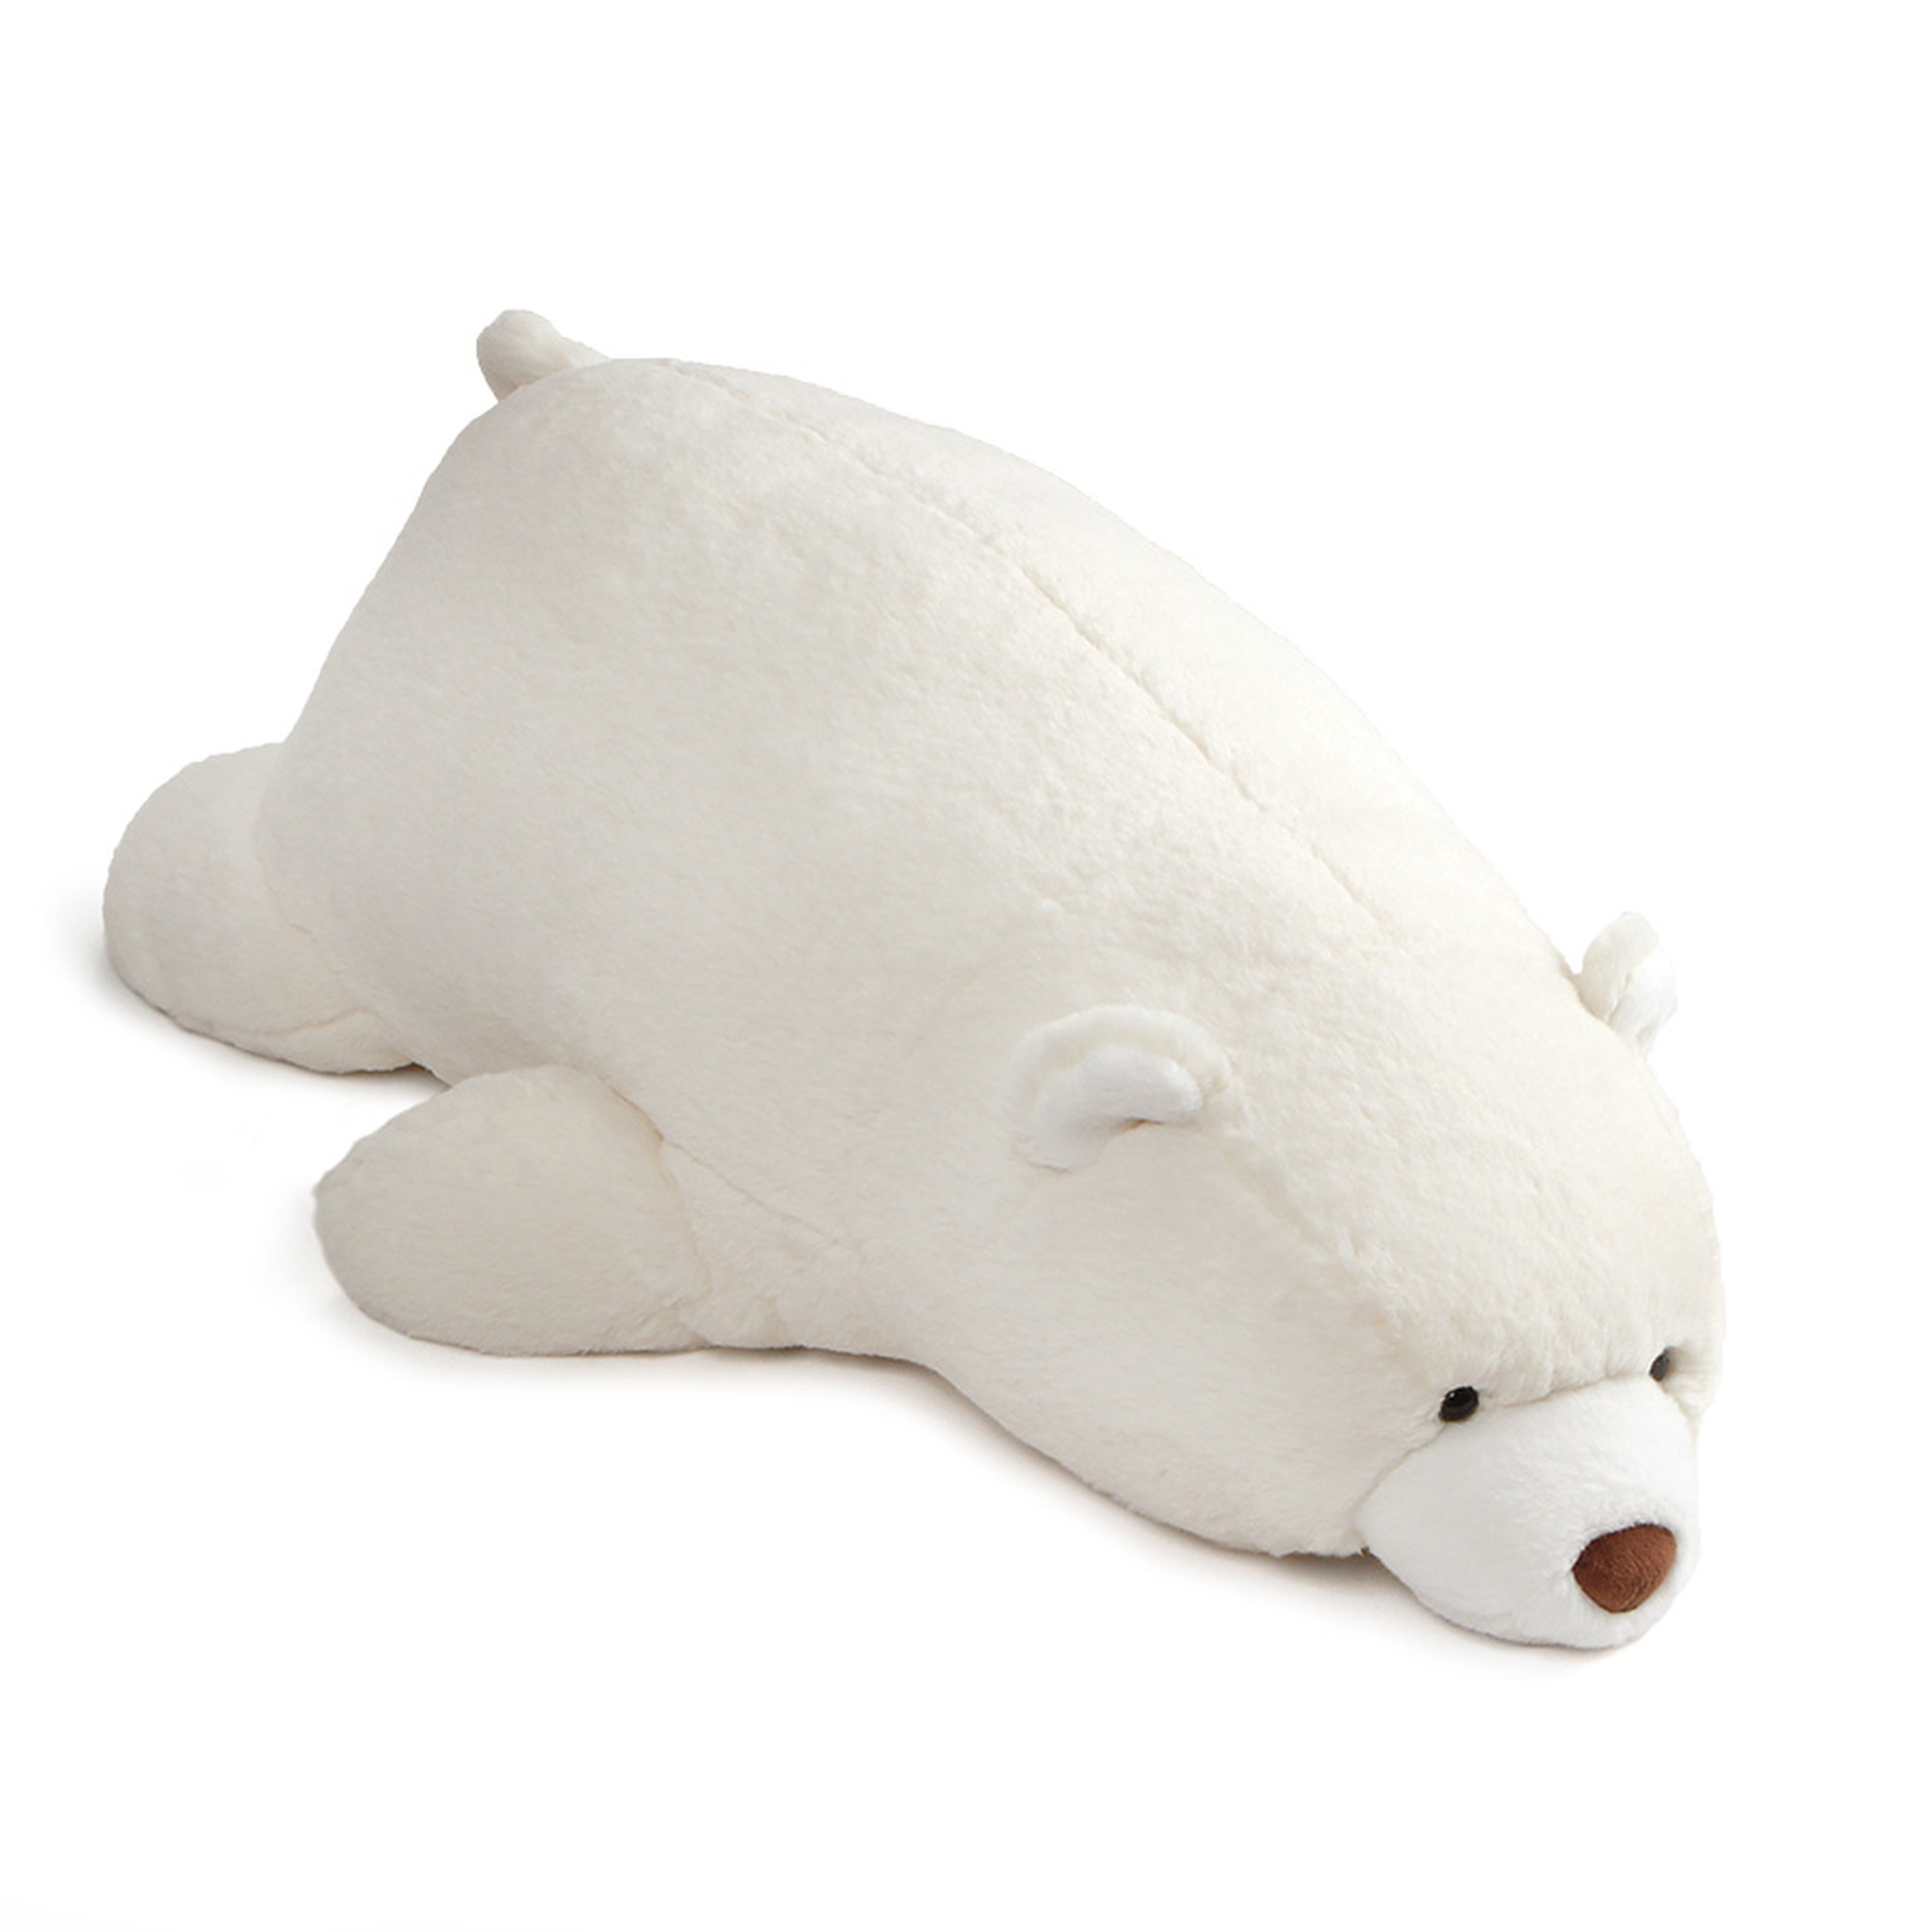 Click here to buy Gund Large Laying Down Snuffles Teddy Bear Plush Stuffed Animal 27 Toy, White by Gund.